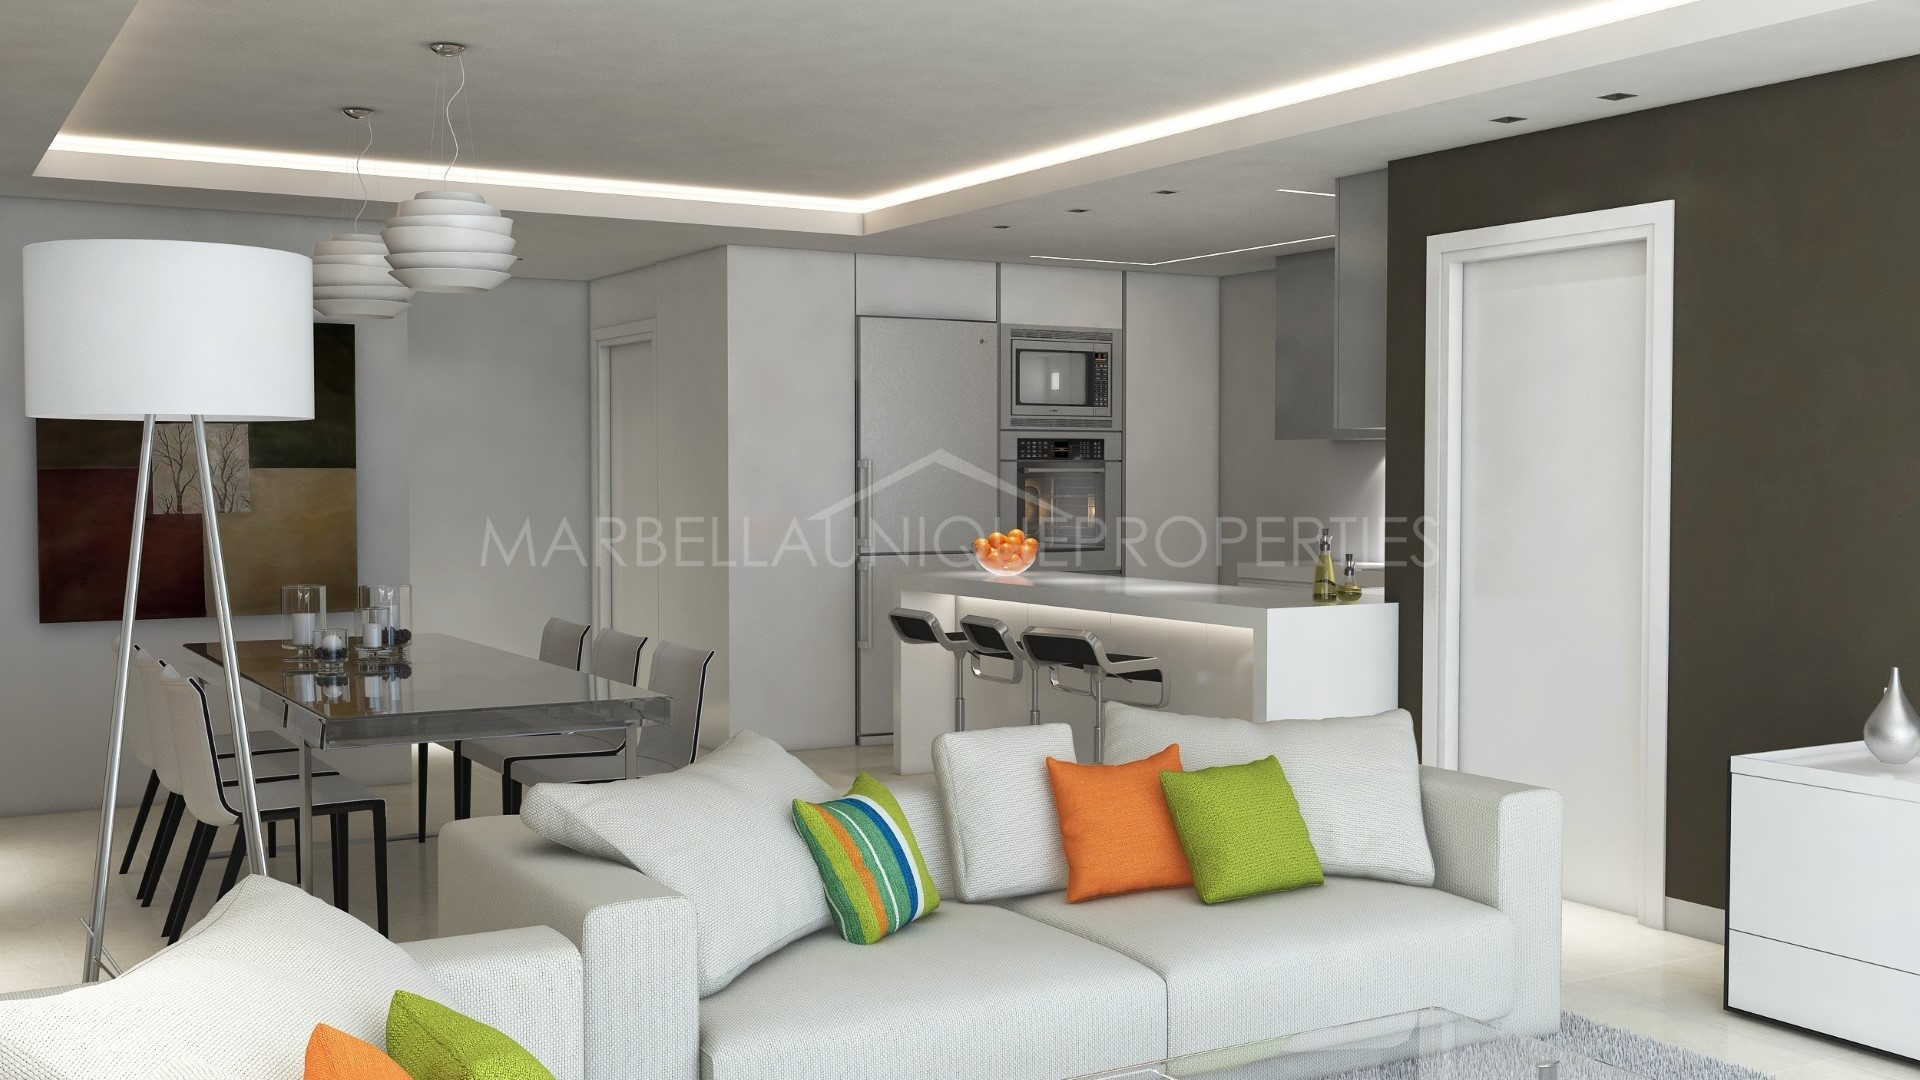 Elegant 2 Bedroom Ground Floor Contemporary Apartment In Nueva Andaluca